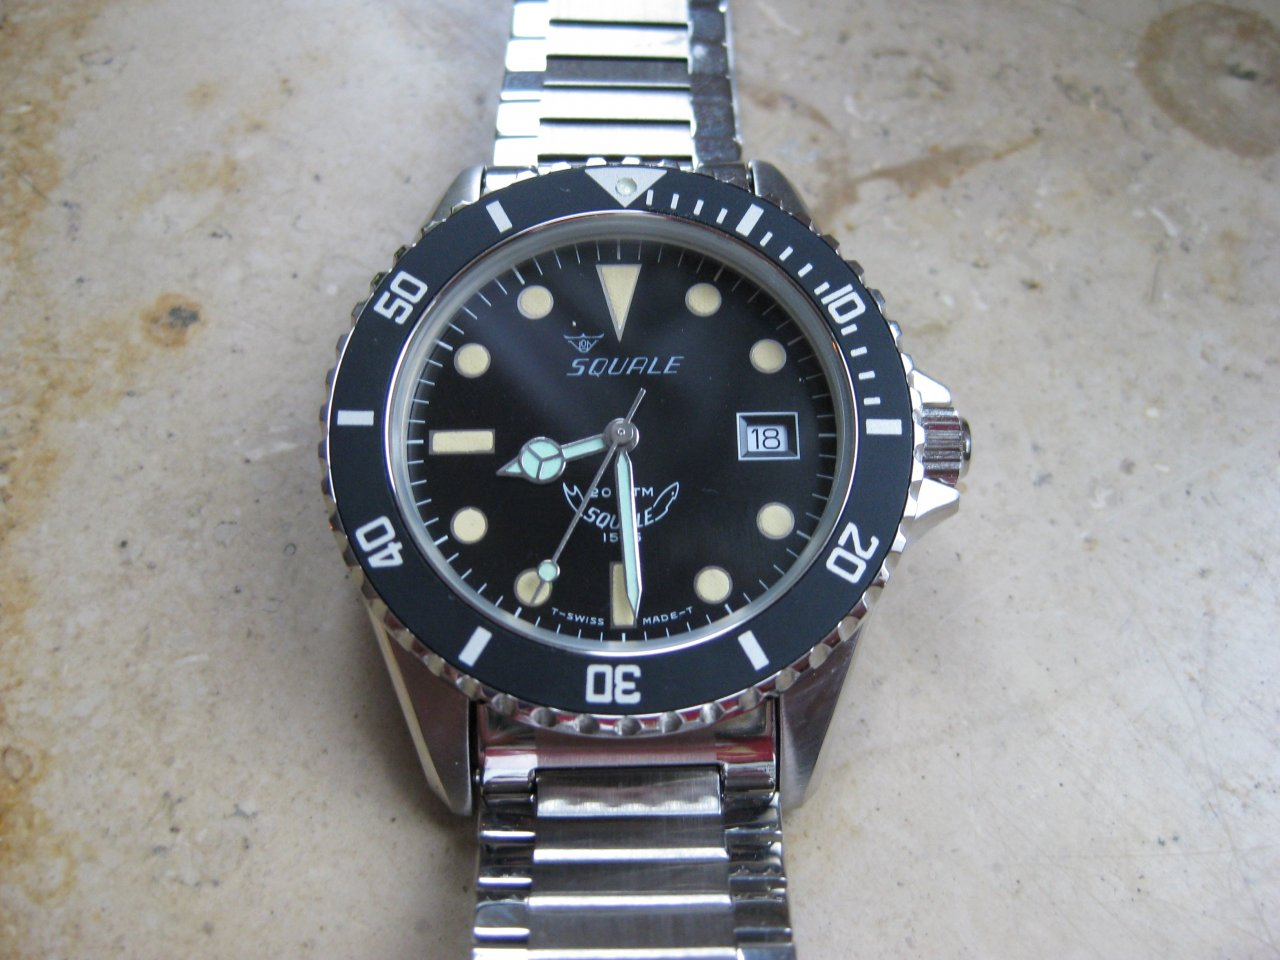 affordable list seiko first updated patrol great under for best without originally diver dollar watch of no s the complete a dive gear reissue is watches which